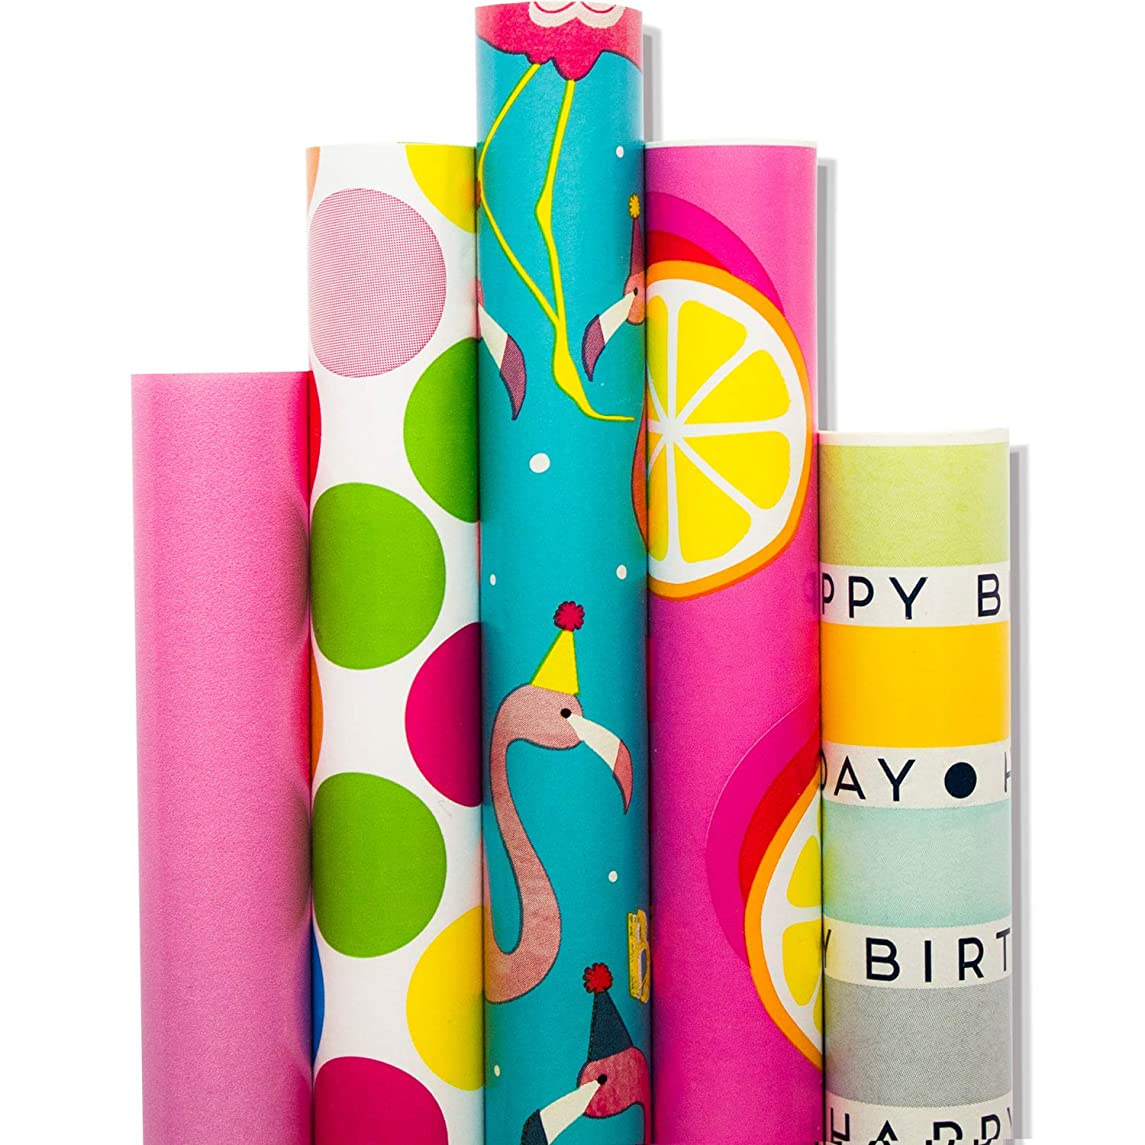 Wrapping Paper - 5 Roll-30Inch x 10Feet Per Roll-Design for Birthday, Mother Day, Valentine`s Day, Wedding, Baby Shower, Christmas Gift Wrap, Flamingo, Orange xsqundpxiciplw